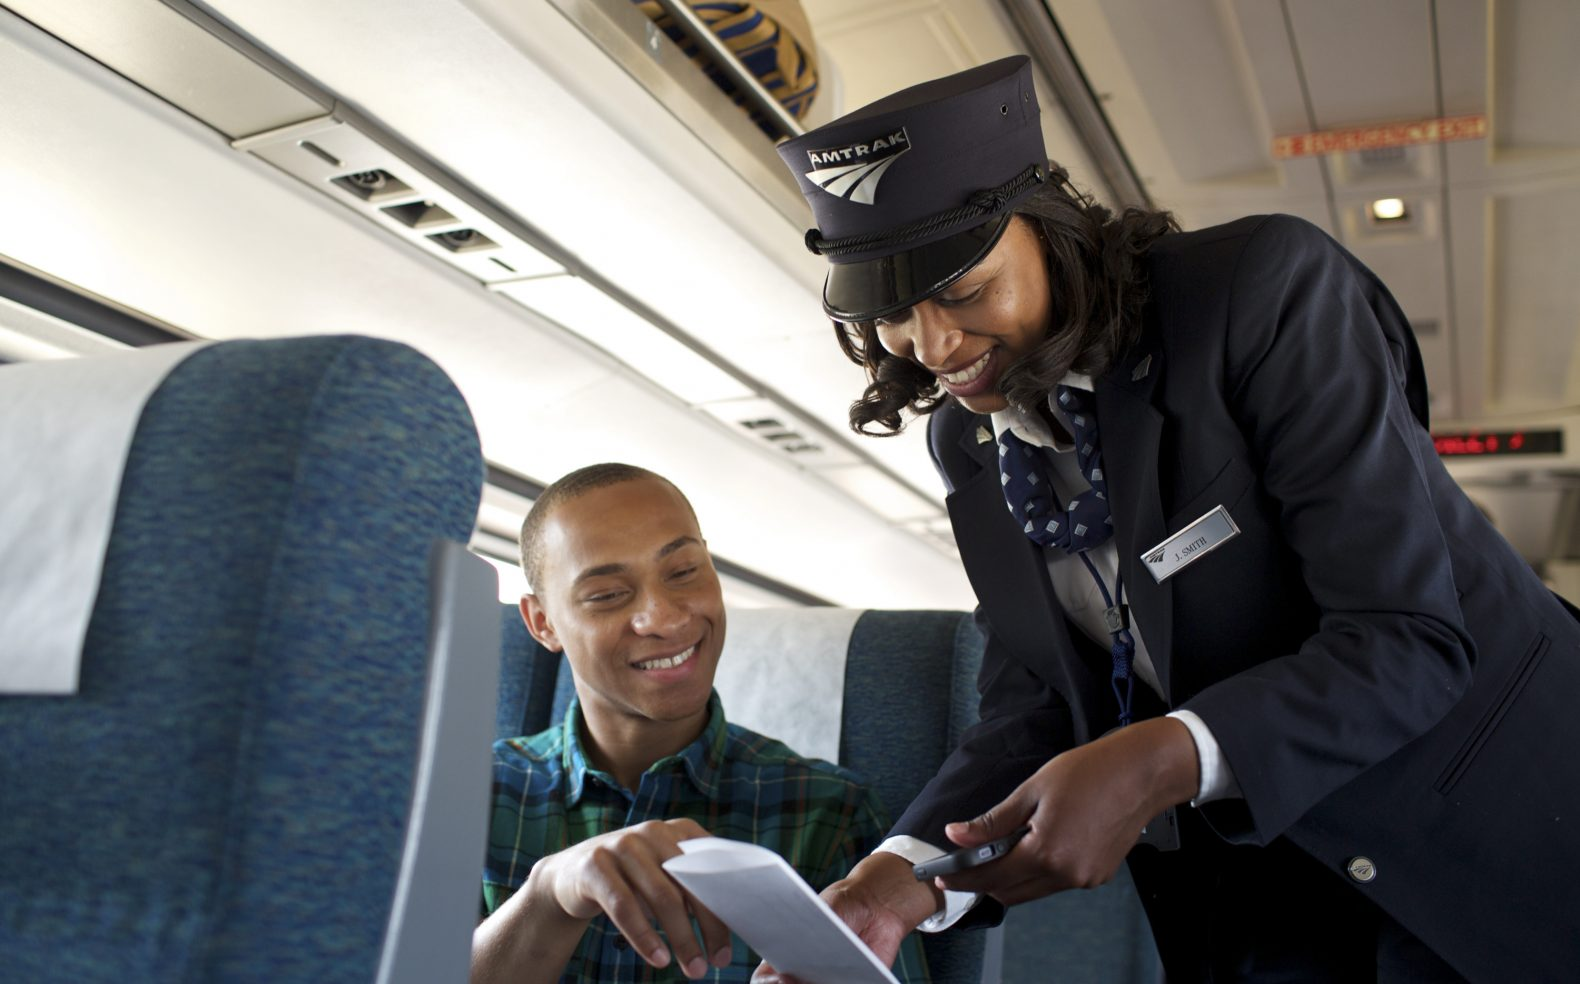 An Amtrak train employee and passenger smile as the passenger holds his ticket as the employee examines it.